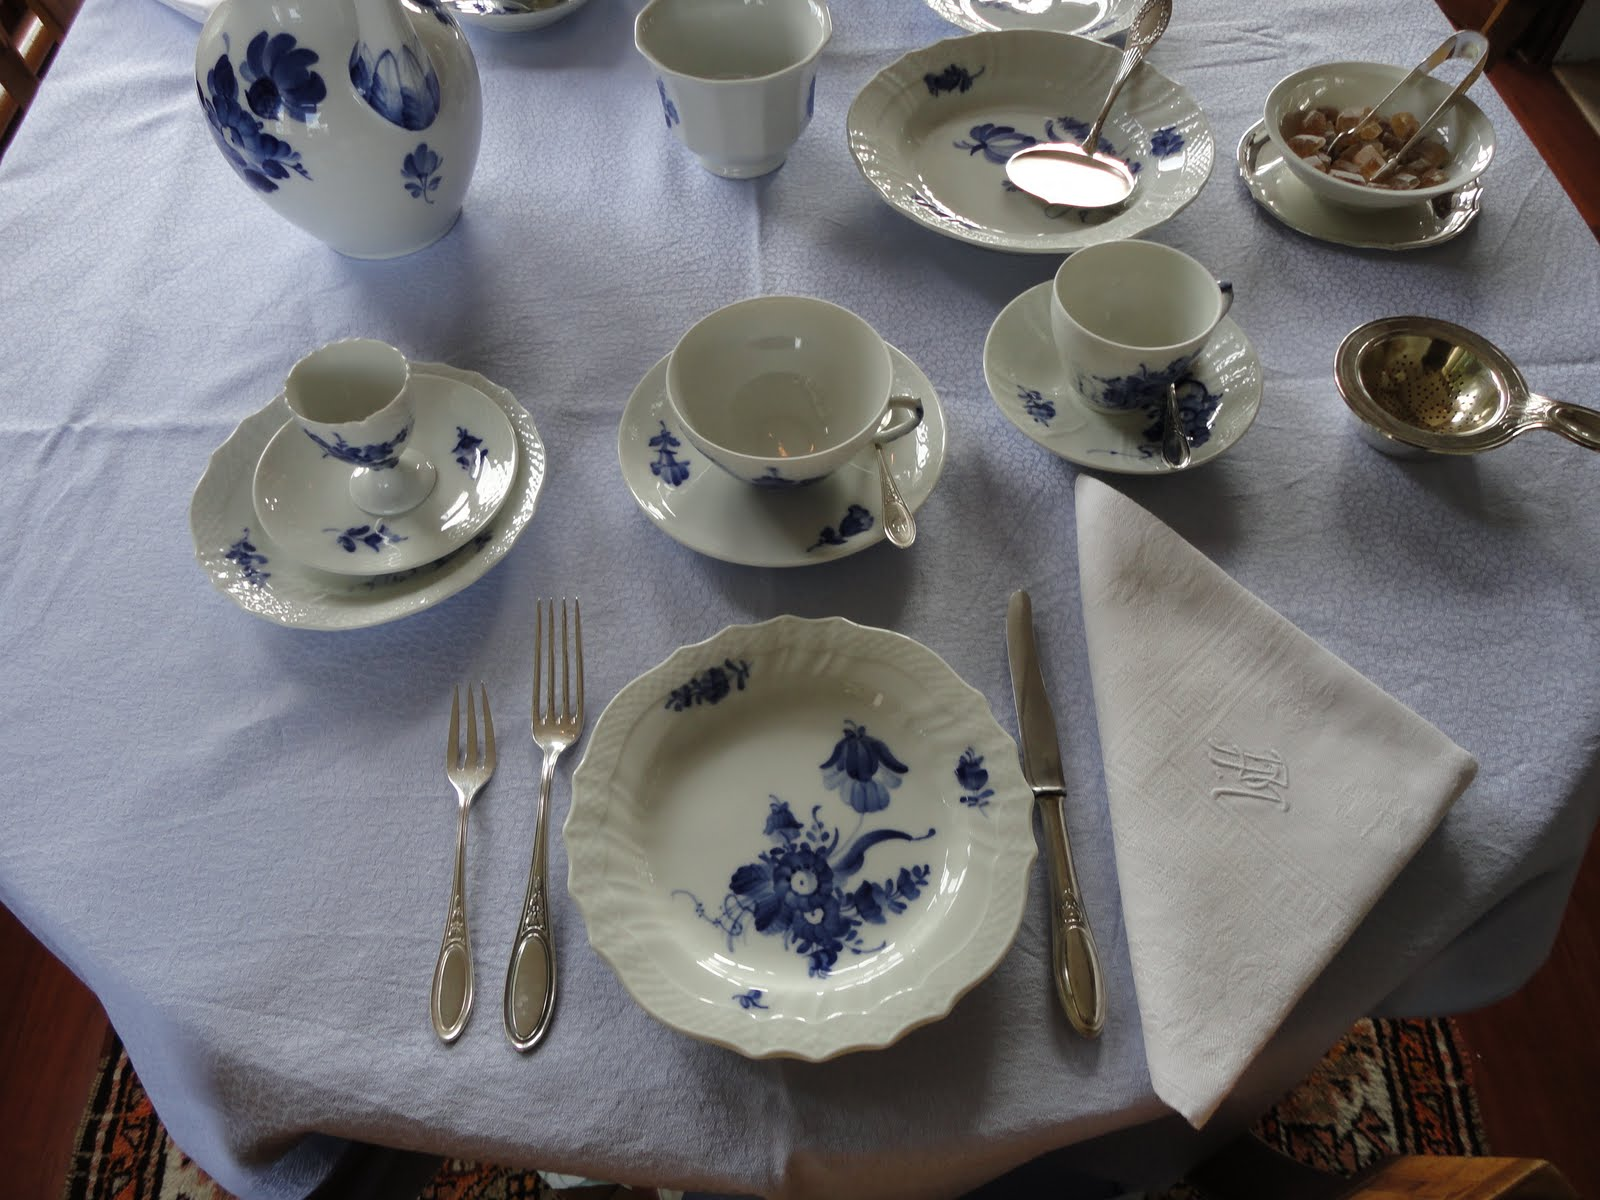 Dining in the conservatory with royal copenhagen blue flower